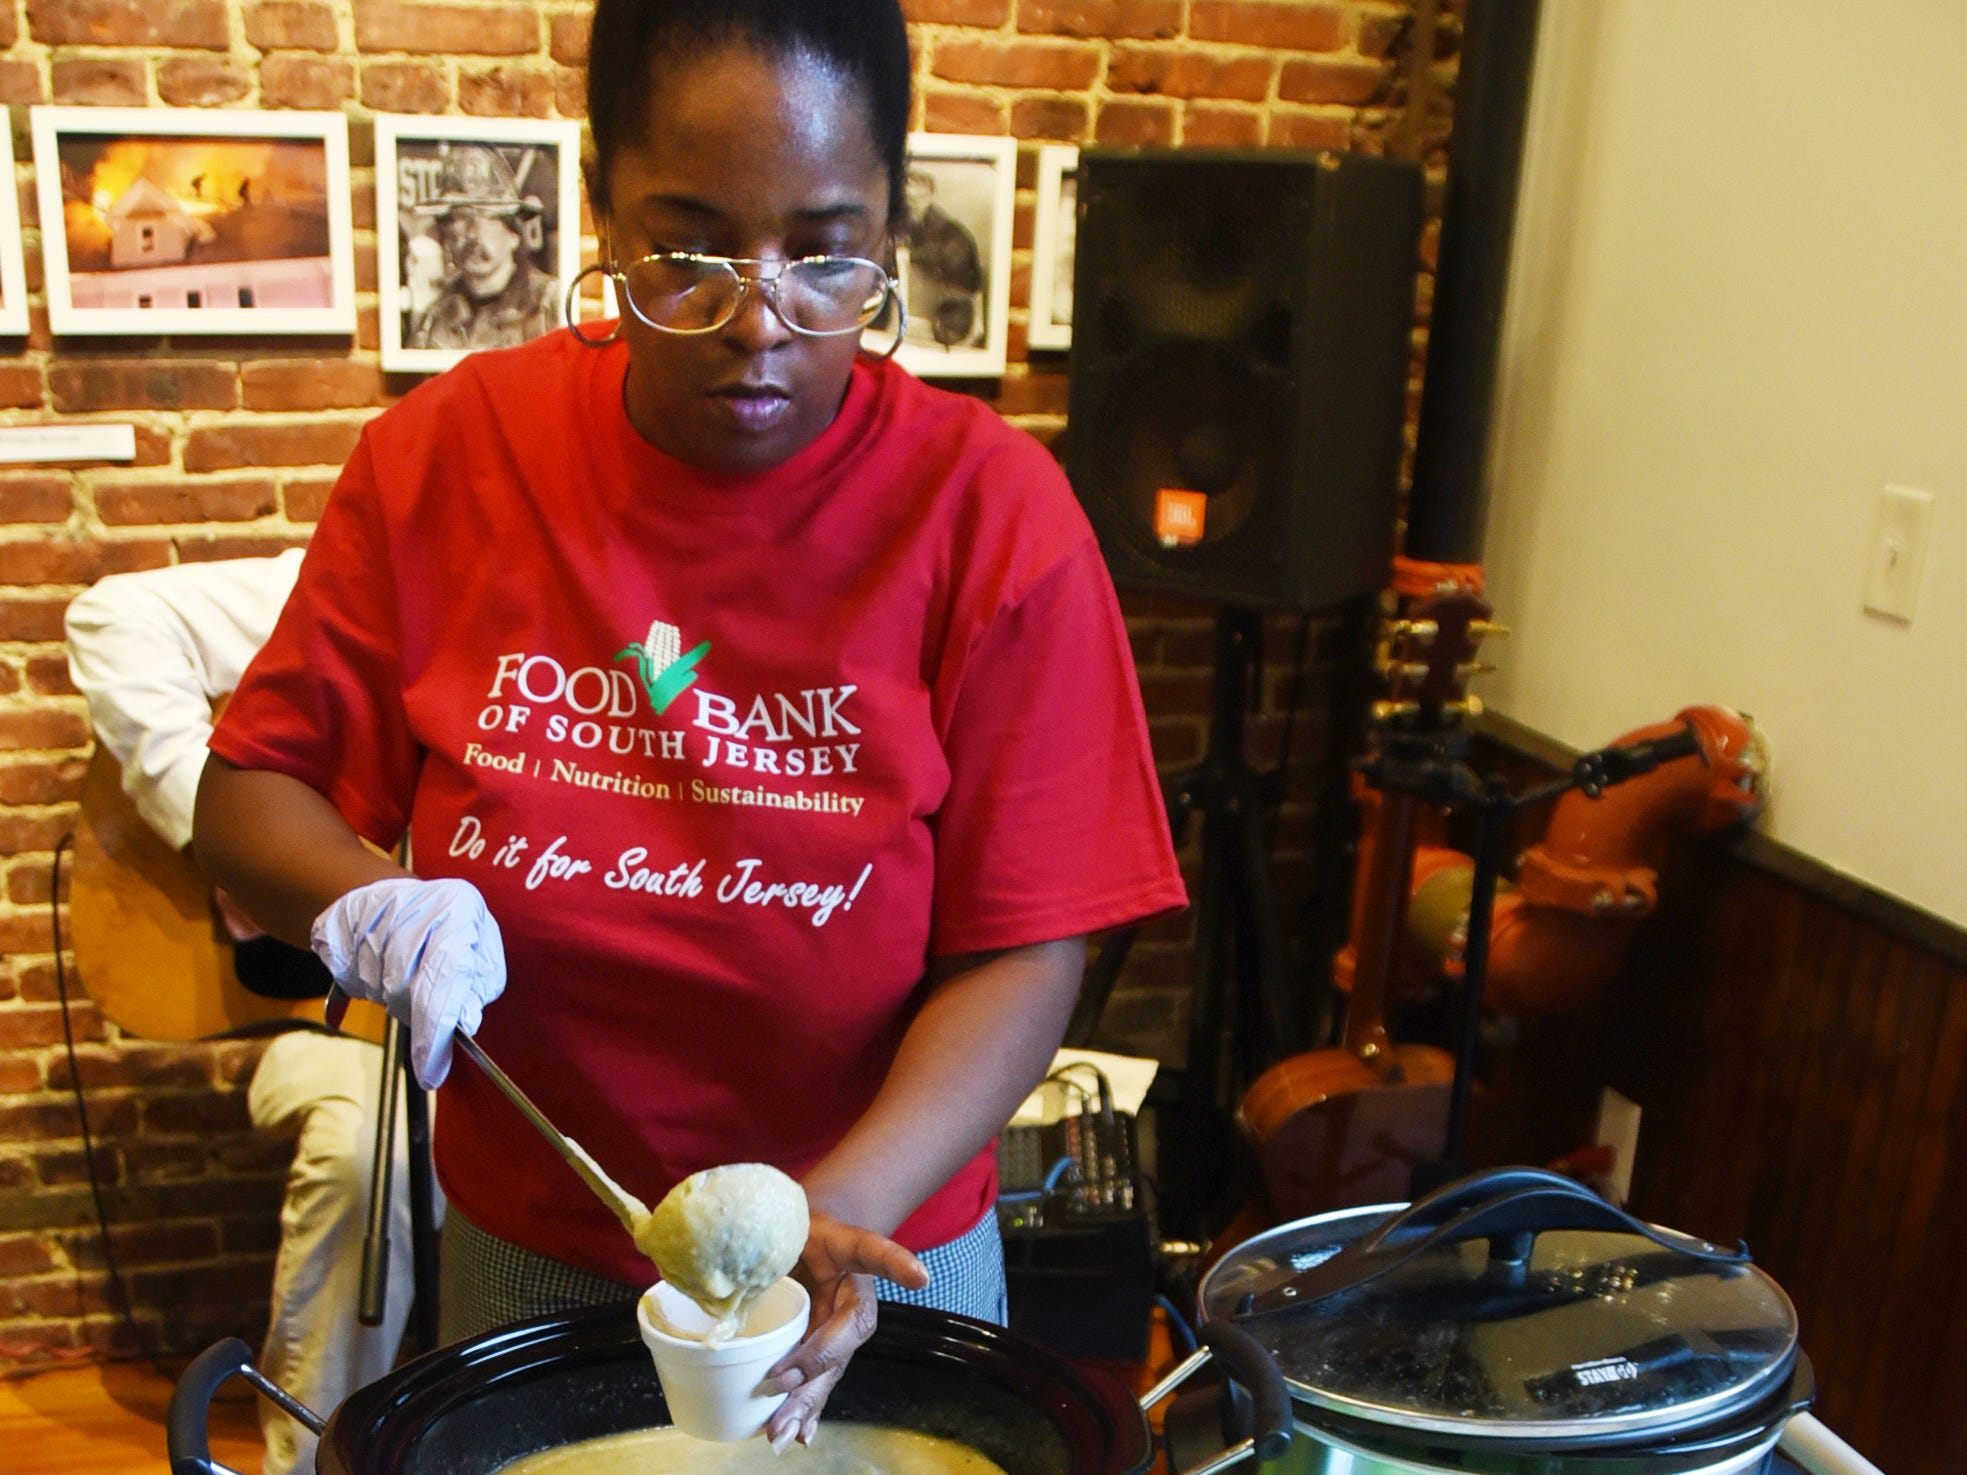 Trina Davis of the Food Bank of South Jersey ladles cauliflower leek soup during the #WasteNot for CFET event at the FireWorks Gallery in South Camden on Saturday, September 29, 2018.  The Courier-Post partnered with the Farm & Fisherman Tavern in Cherry Hill and other community organizations to hold the event that offered a special tasting, farm tour and community conversation about reducing food waste.